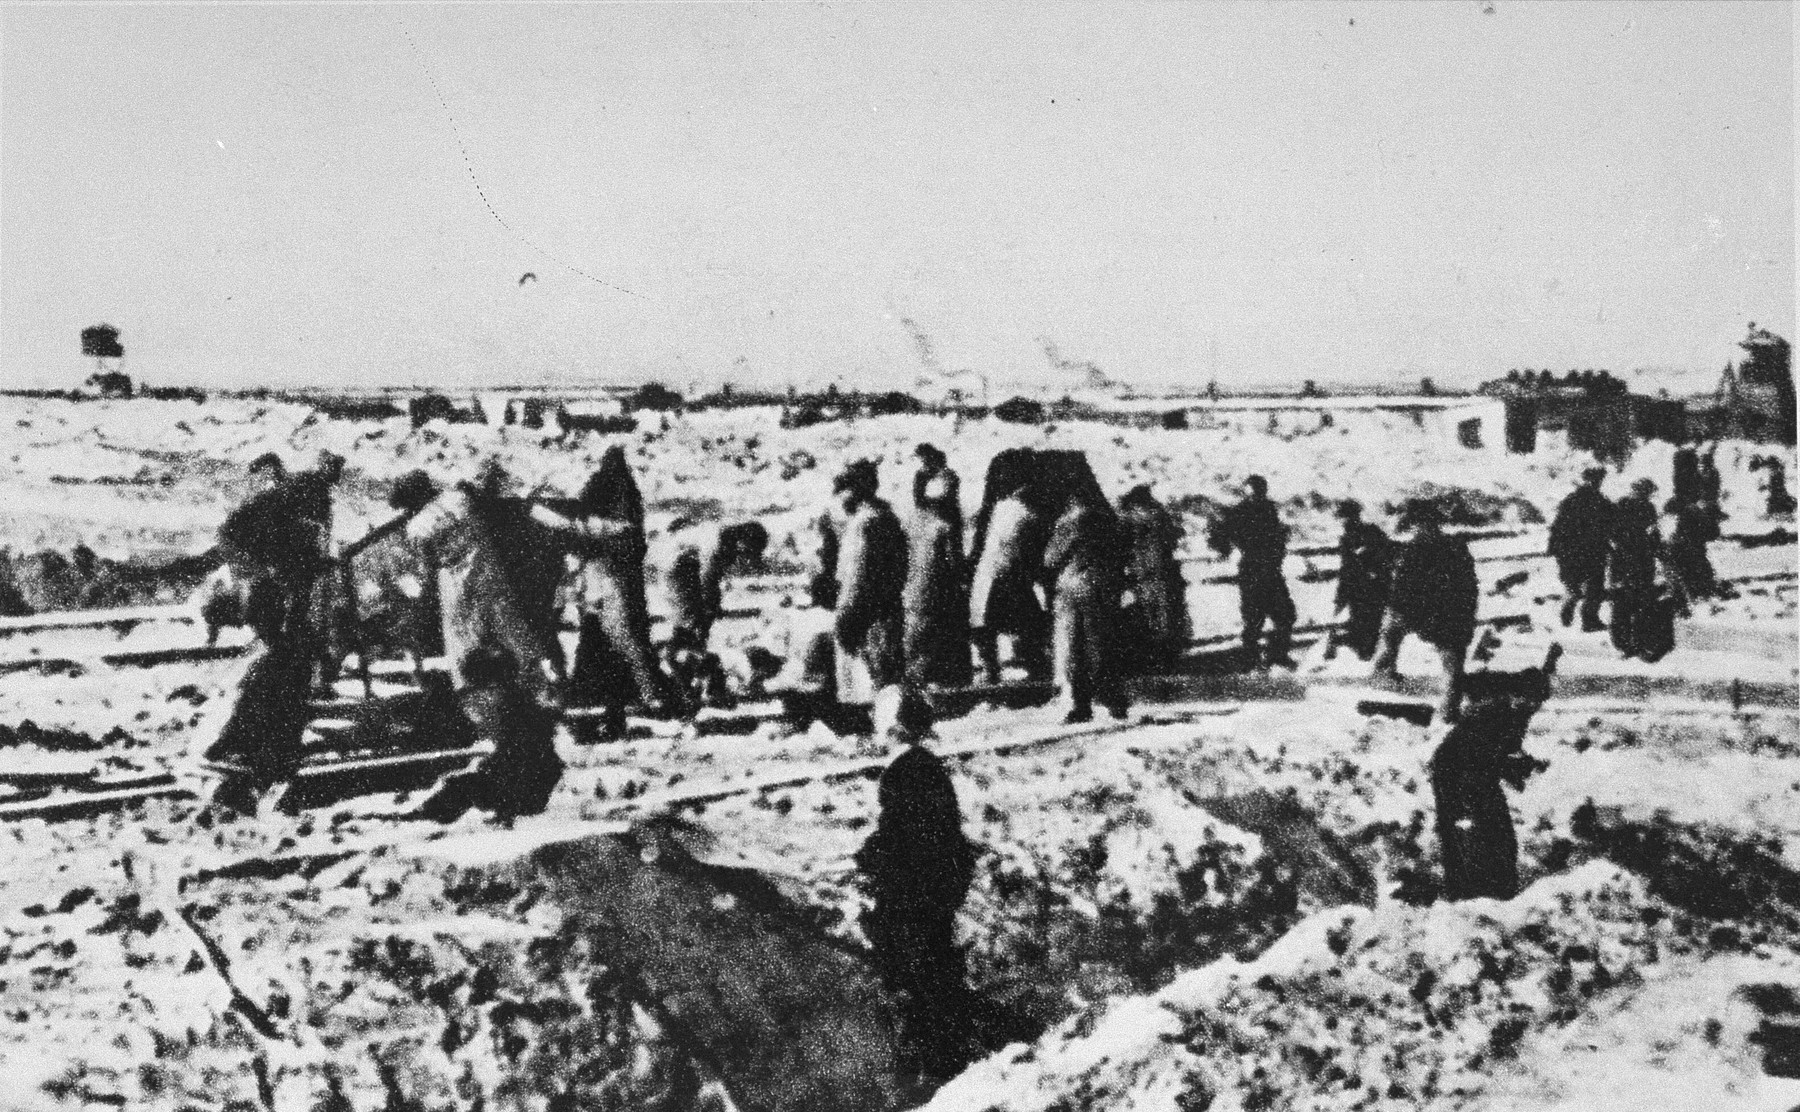 Forced laborers work outdoors in the Majdanek concentration camp.